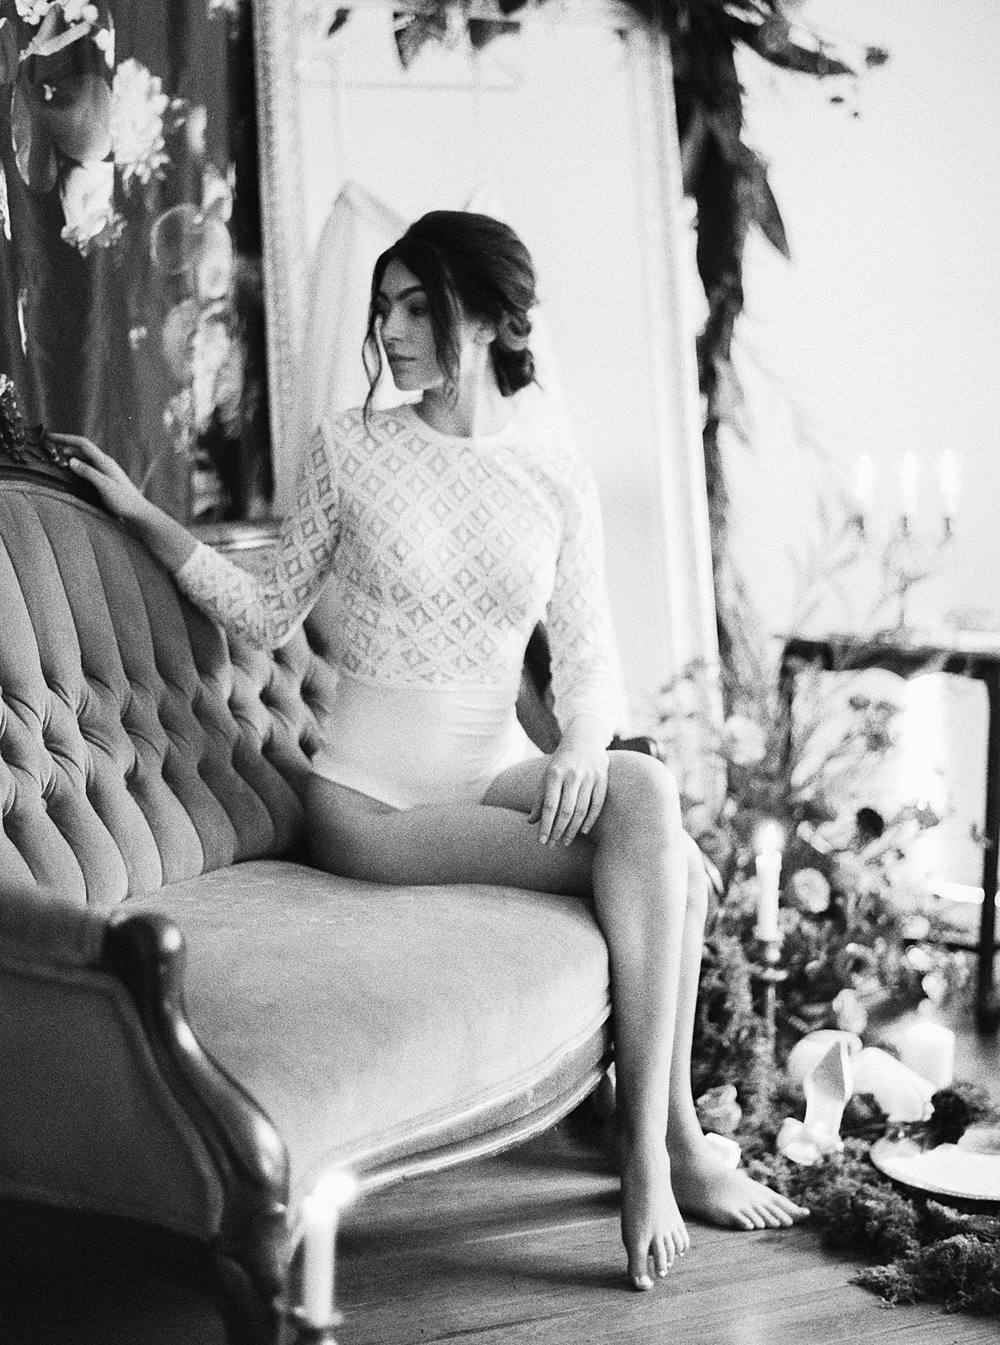 charleston bridal boudoir portrait on film at wingate plantation by brian d smith photography with bride in white lace bodysuit